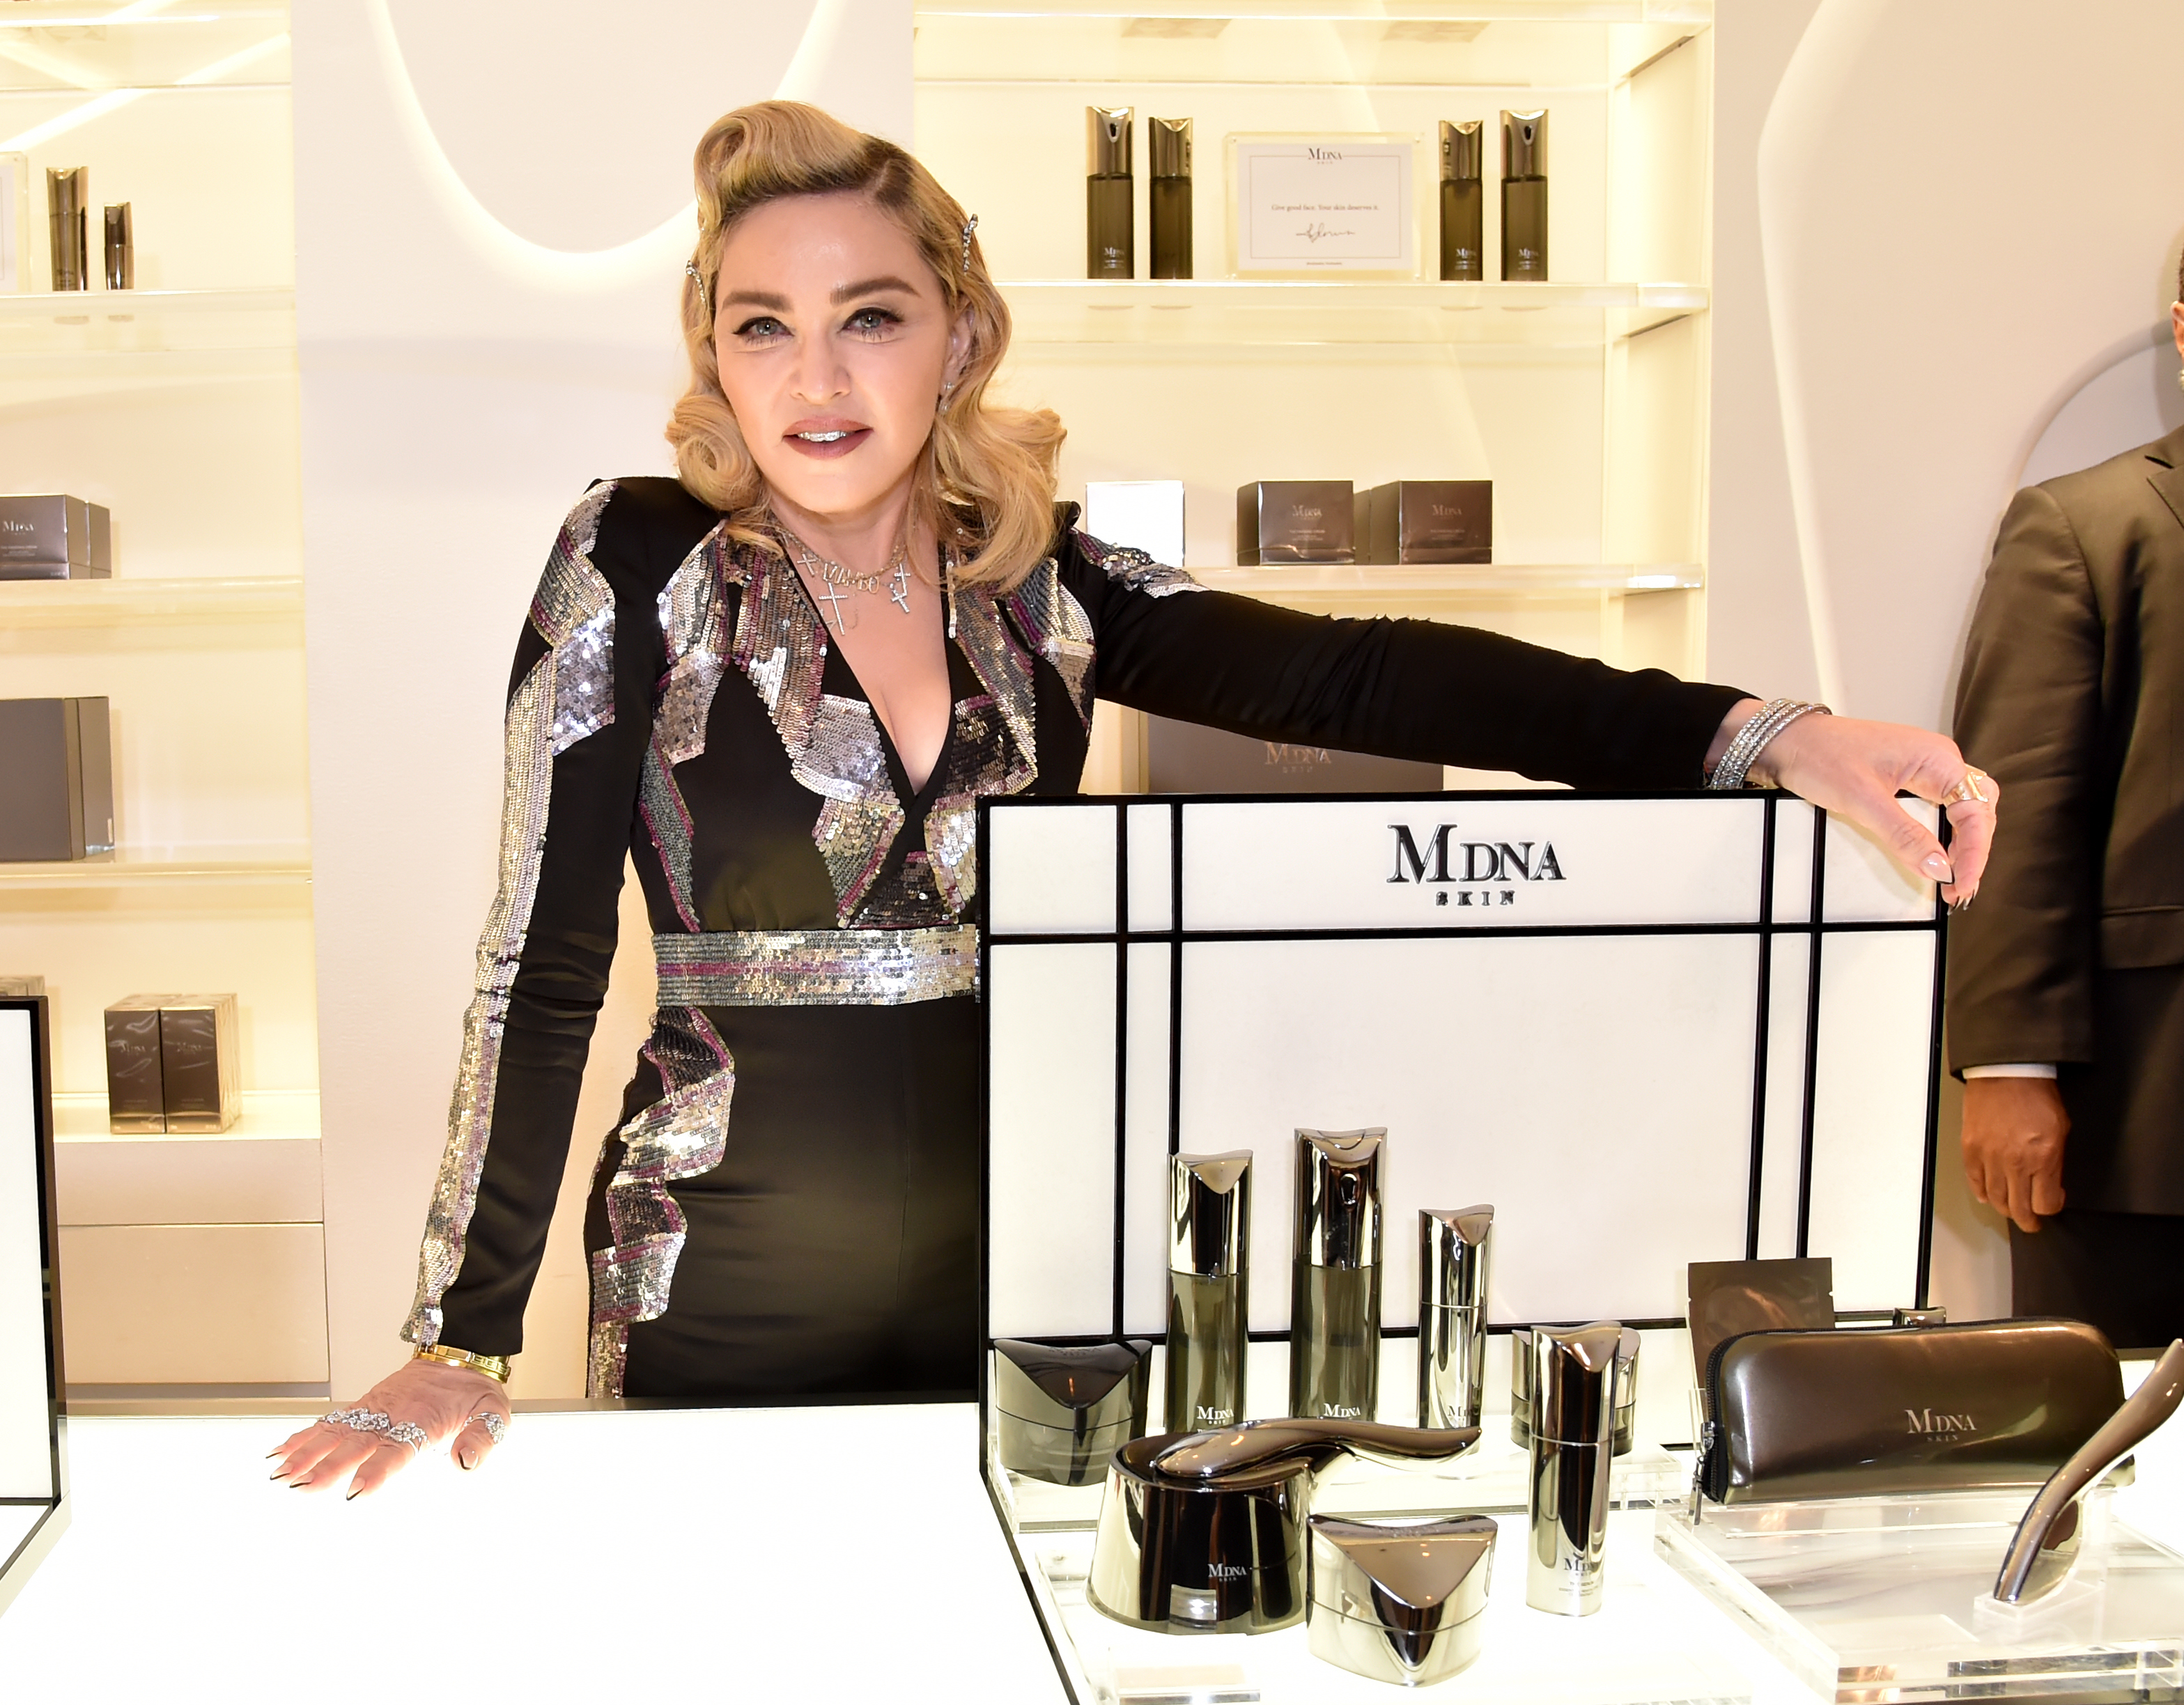 Madonna visits MDNA SKIN Counter at Barneys New York City in  Beverly Hills, California, on March 6, 2018.